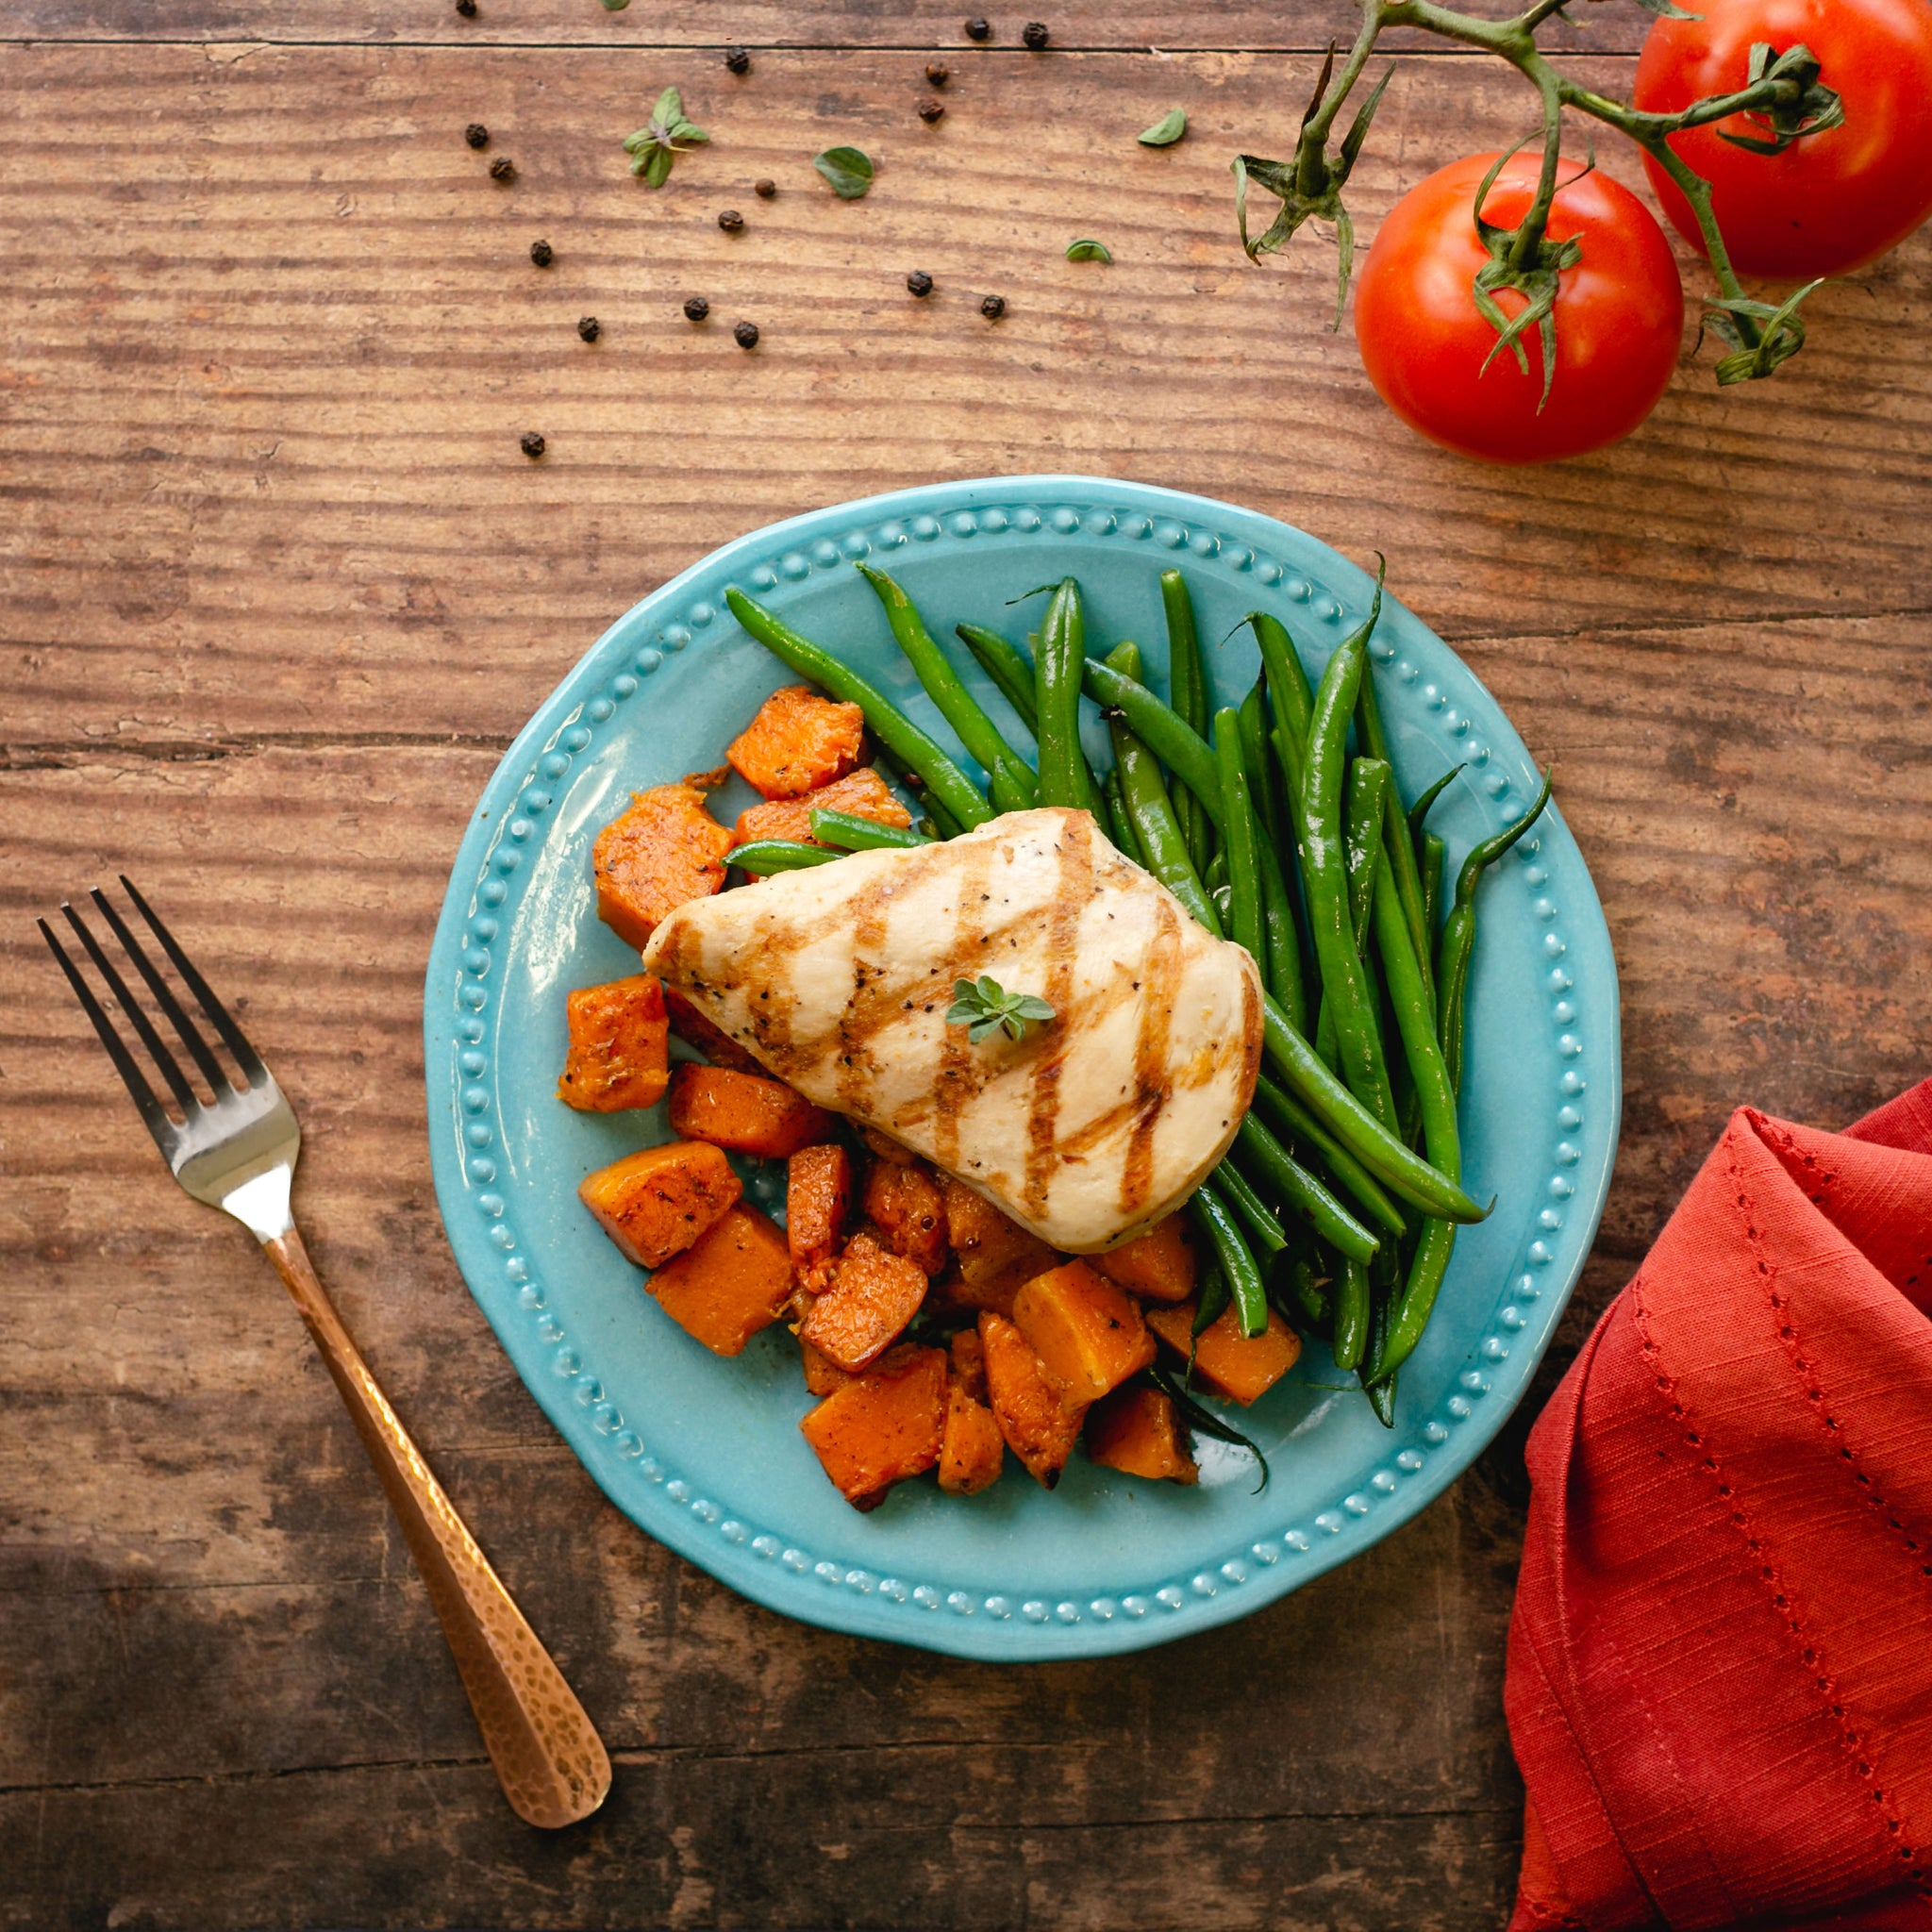 Chicken, Sweet Potato, Green Beans